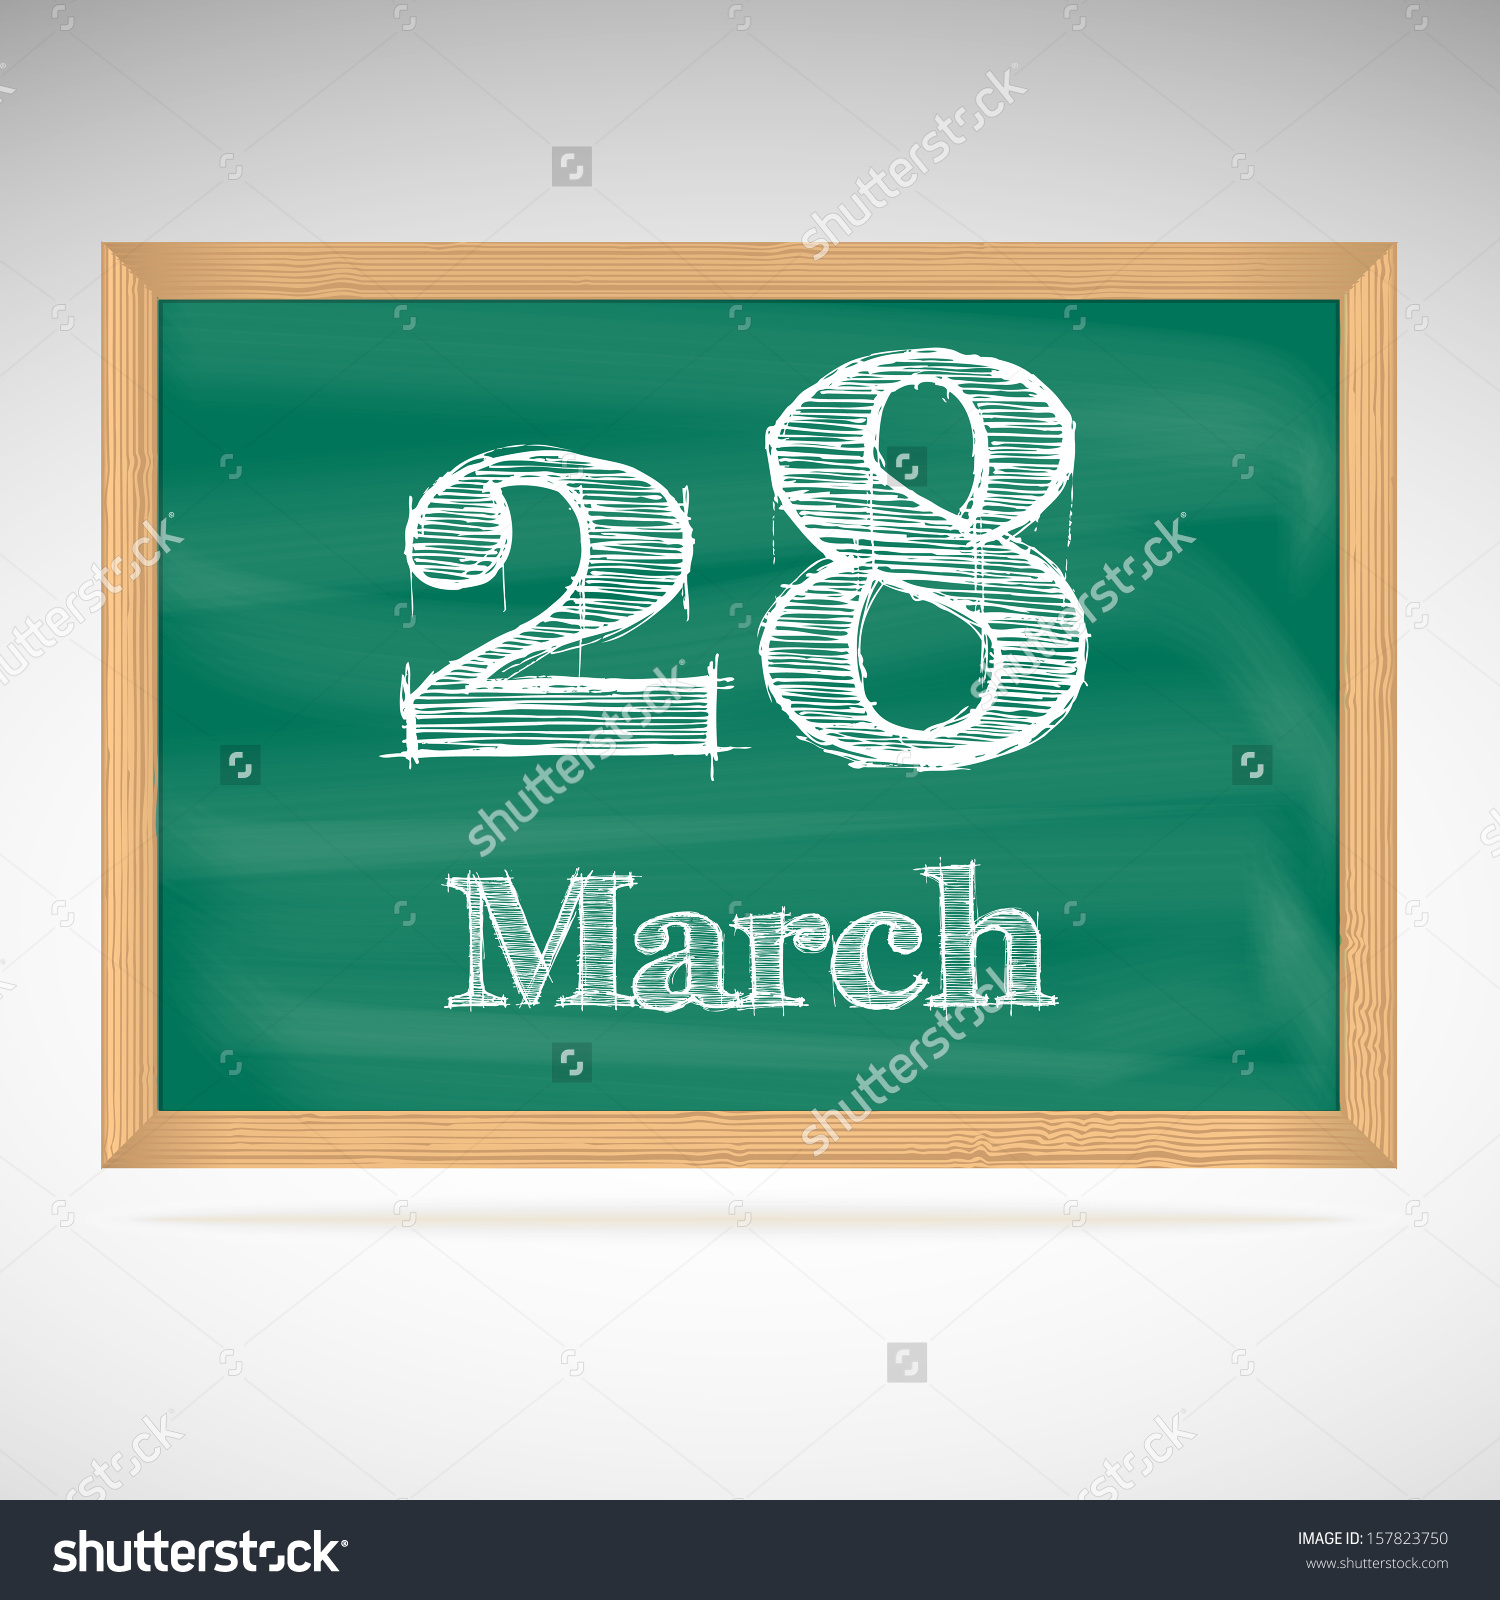 Calendar may 28 clipart graphic transparent download Free clipart for may calendar board - ClipartFest graphic transparent download